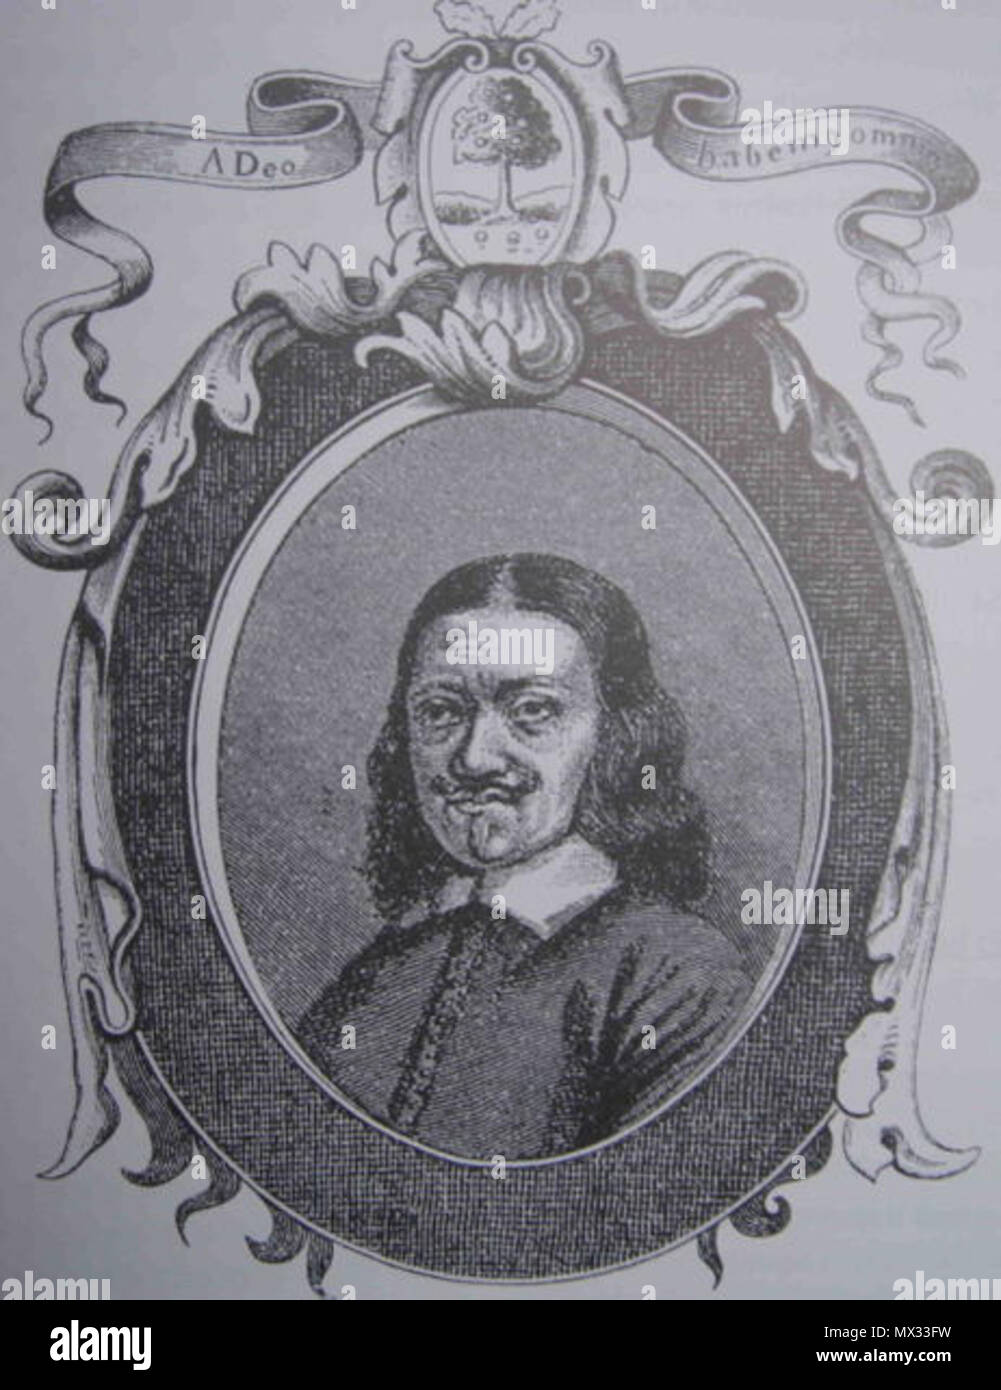 . English: Johannes Mejer (1606-1674), Danish mathematician and map maker (see Category:Maps by Johannes Mejer Dansk: Johannes Mejer (1606-1674), dansk kartograf. Unknown date but very likely more than 70 year ago. Unknown 321 JohannesMejer - Stock Image